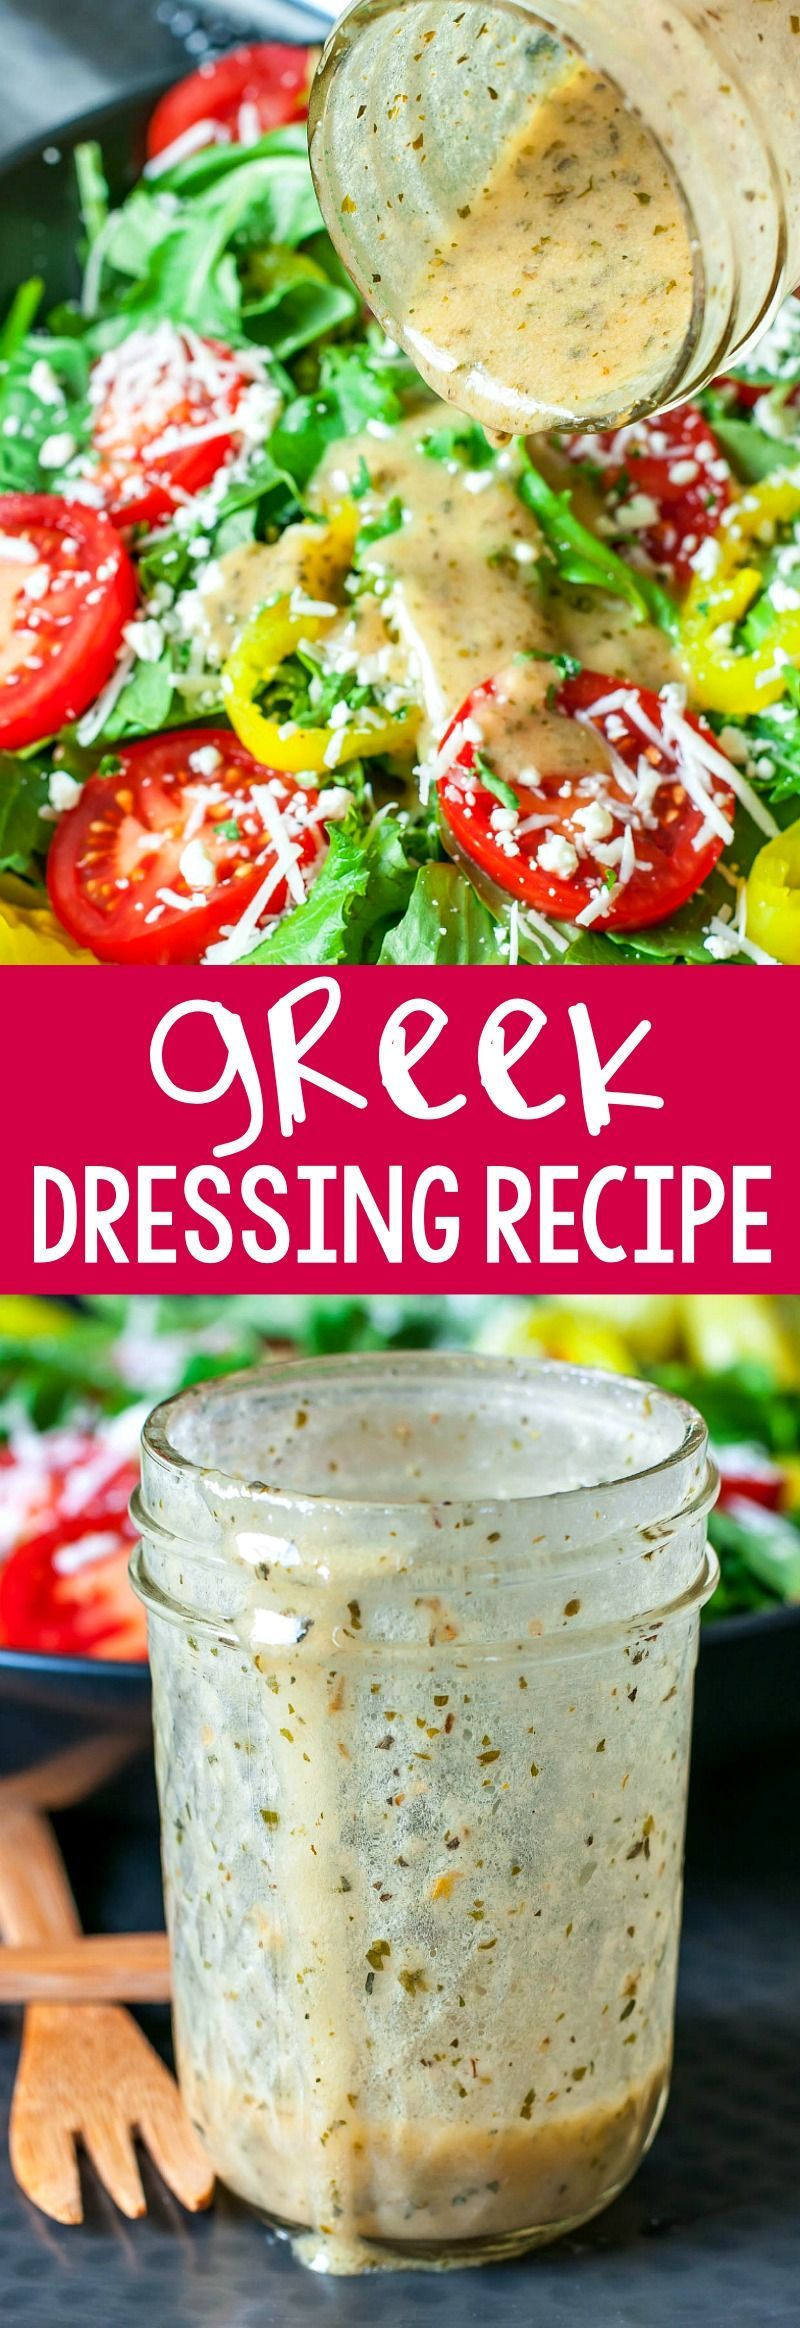 Easy Homemade Greek Dressing This delicious foil pack honey garlic chicken\u00a0is packed with amazing flavors! These meals are perfect for the summer when you want to keep the heat out of the house (no oven!) and keep the messes to a minimum. Also great for camping! #beefdishes